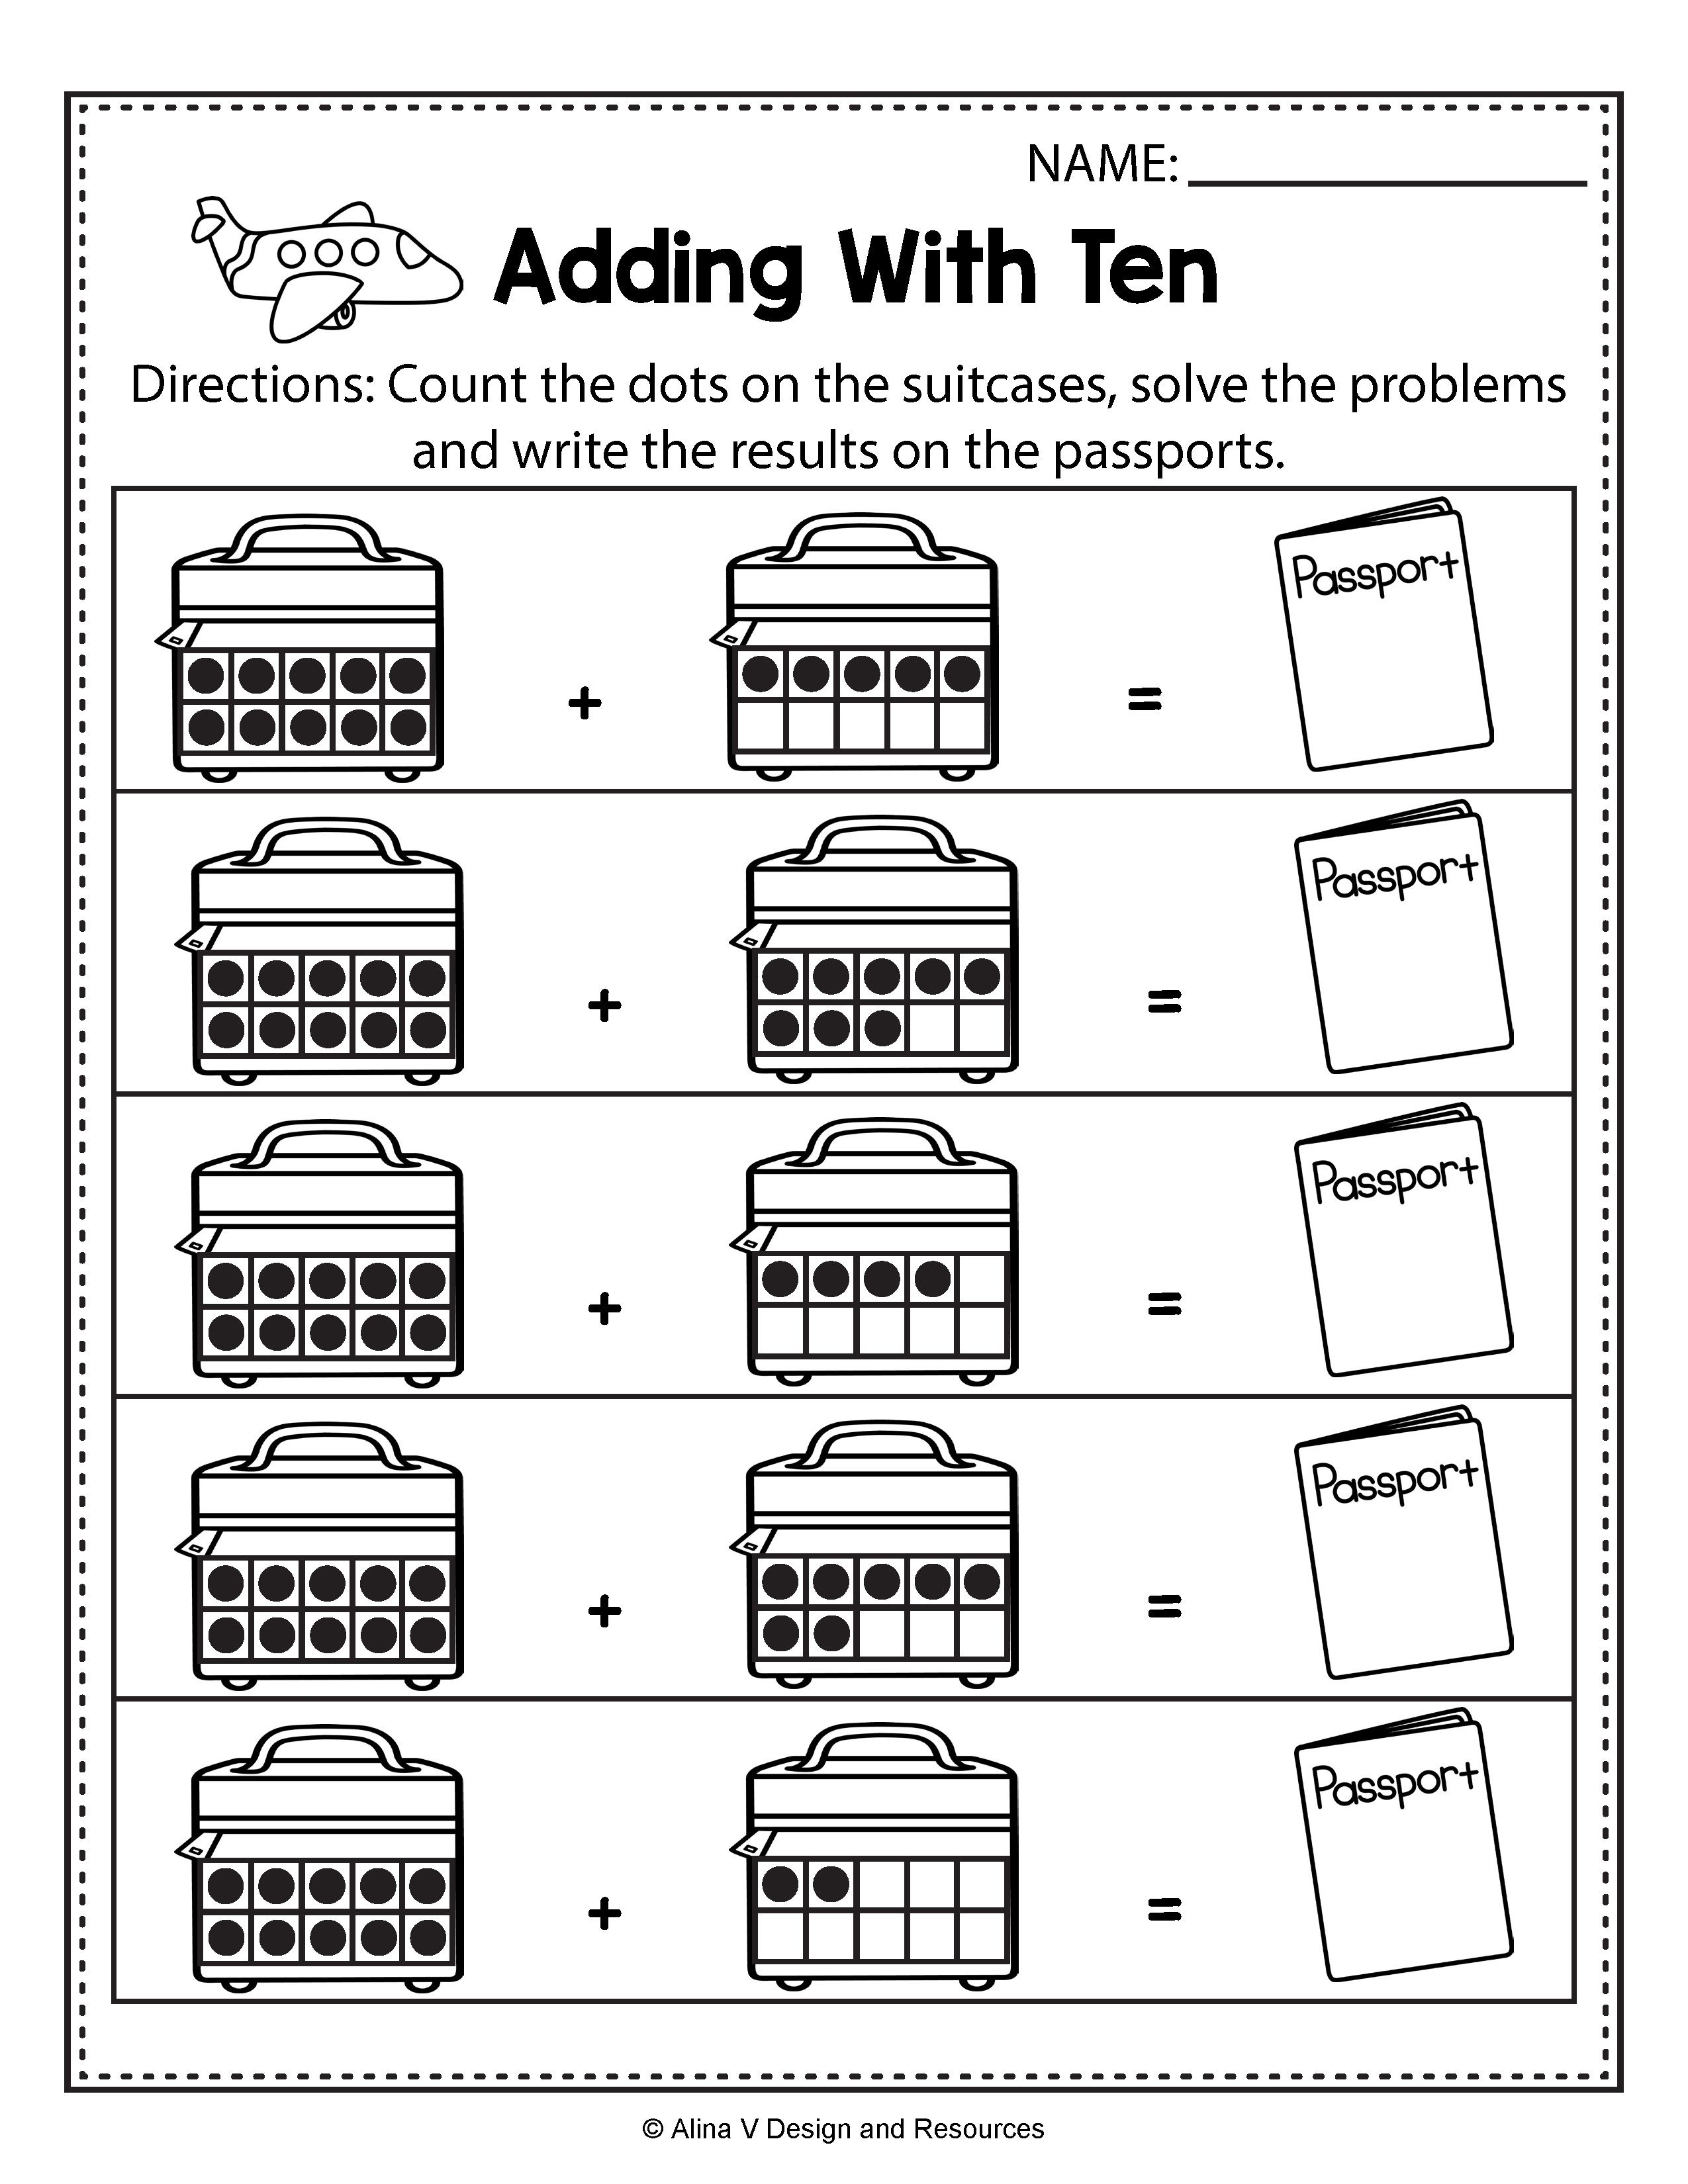 Adding With Ten Addition Summer Math Worksheets And Activities For Preschool Kindergarten And 1st Grade Kids Perfect For Morning Work And Math Centers Thes Summer addition worksheets free